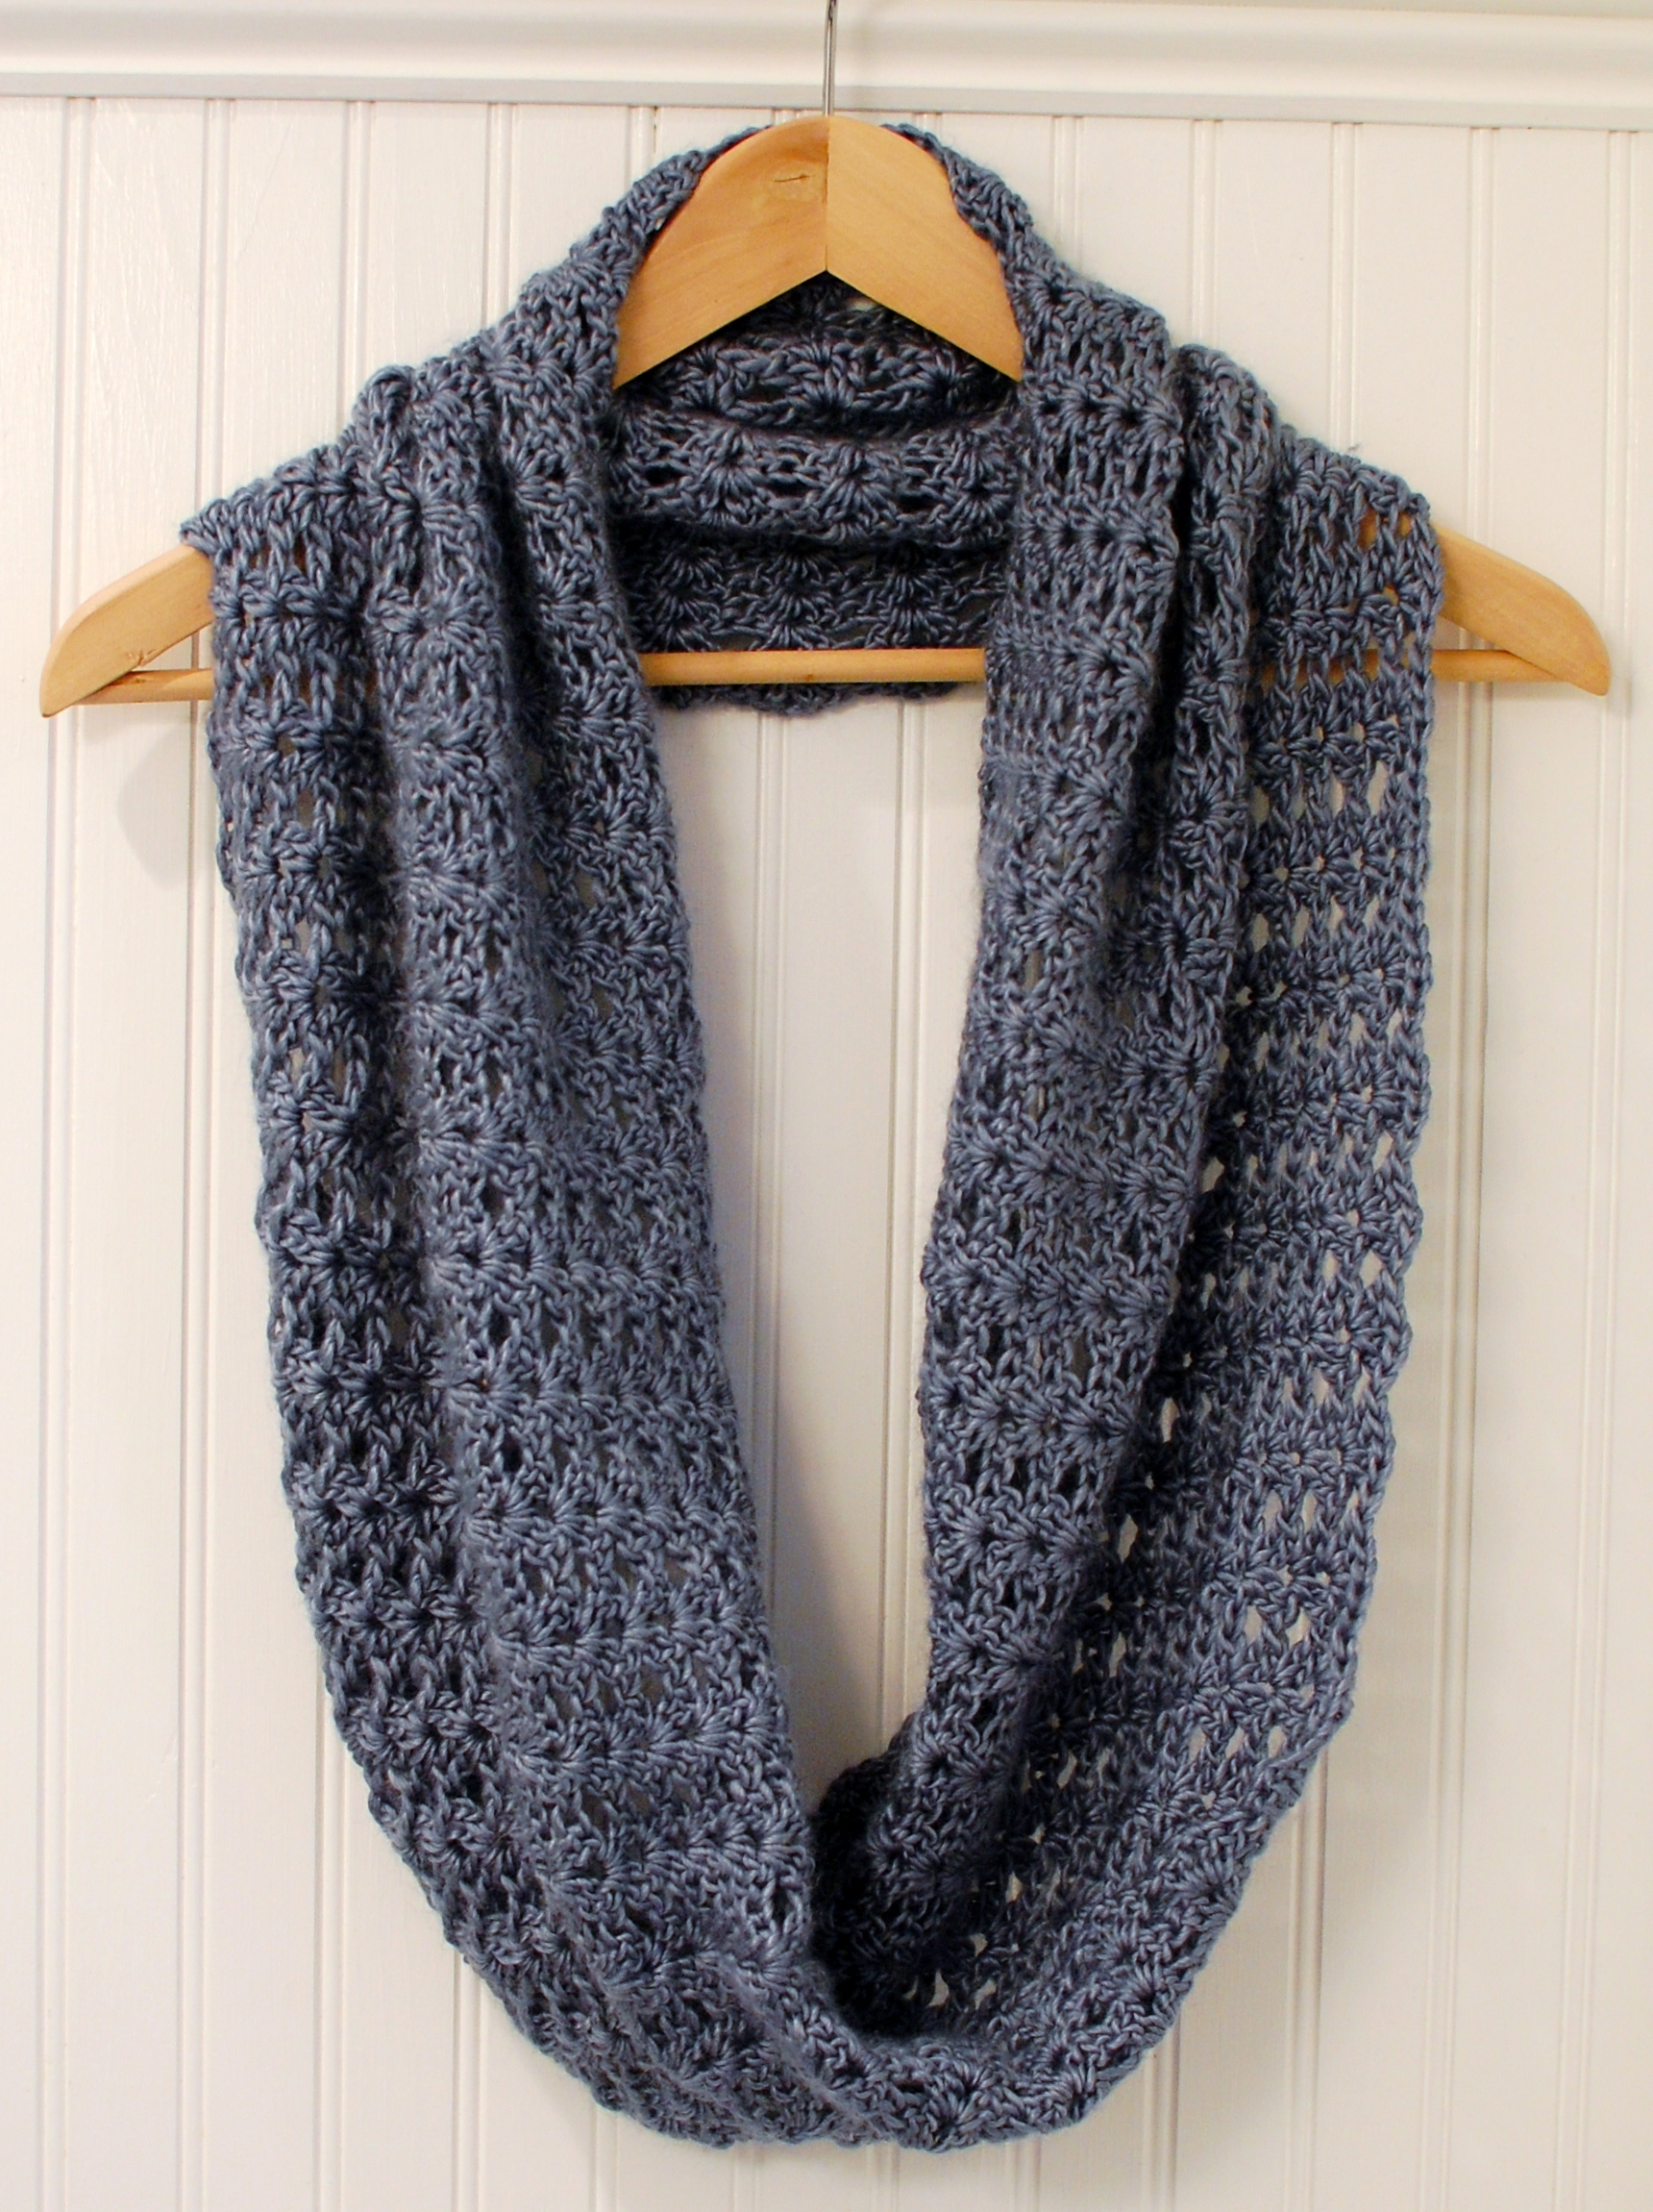 Crochet Pattern  Mobius Infinity Scarf  Wrap includes instructions  How To Crochet Infinity Twist Wrap